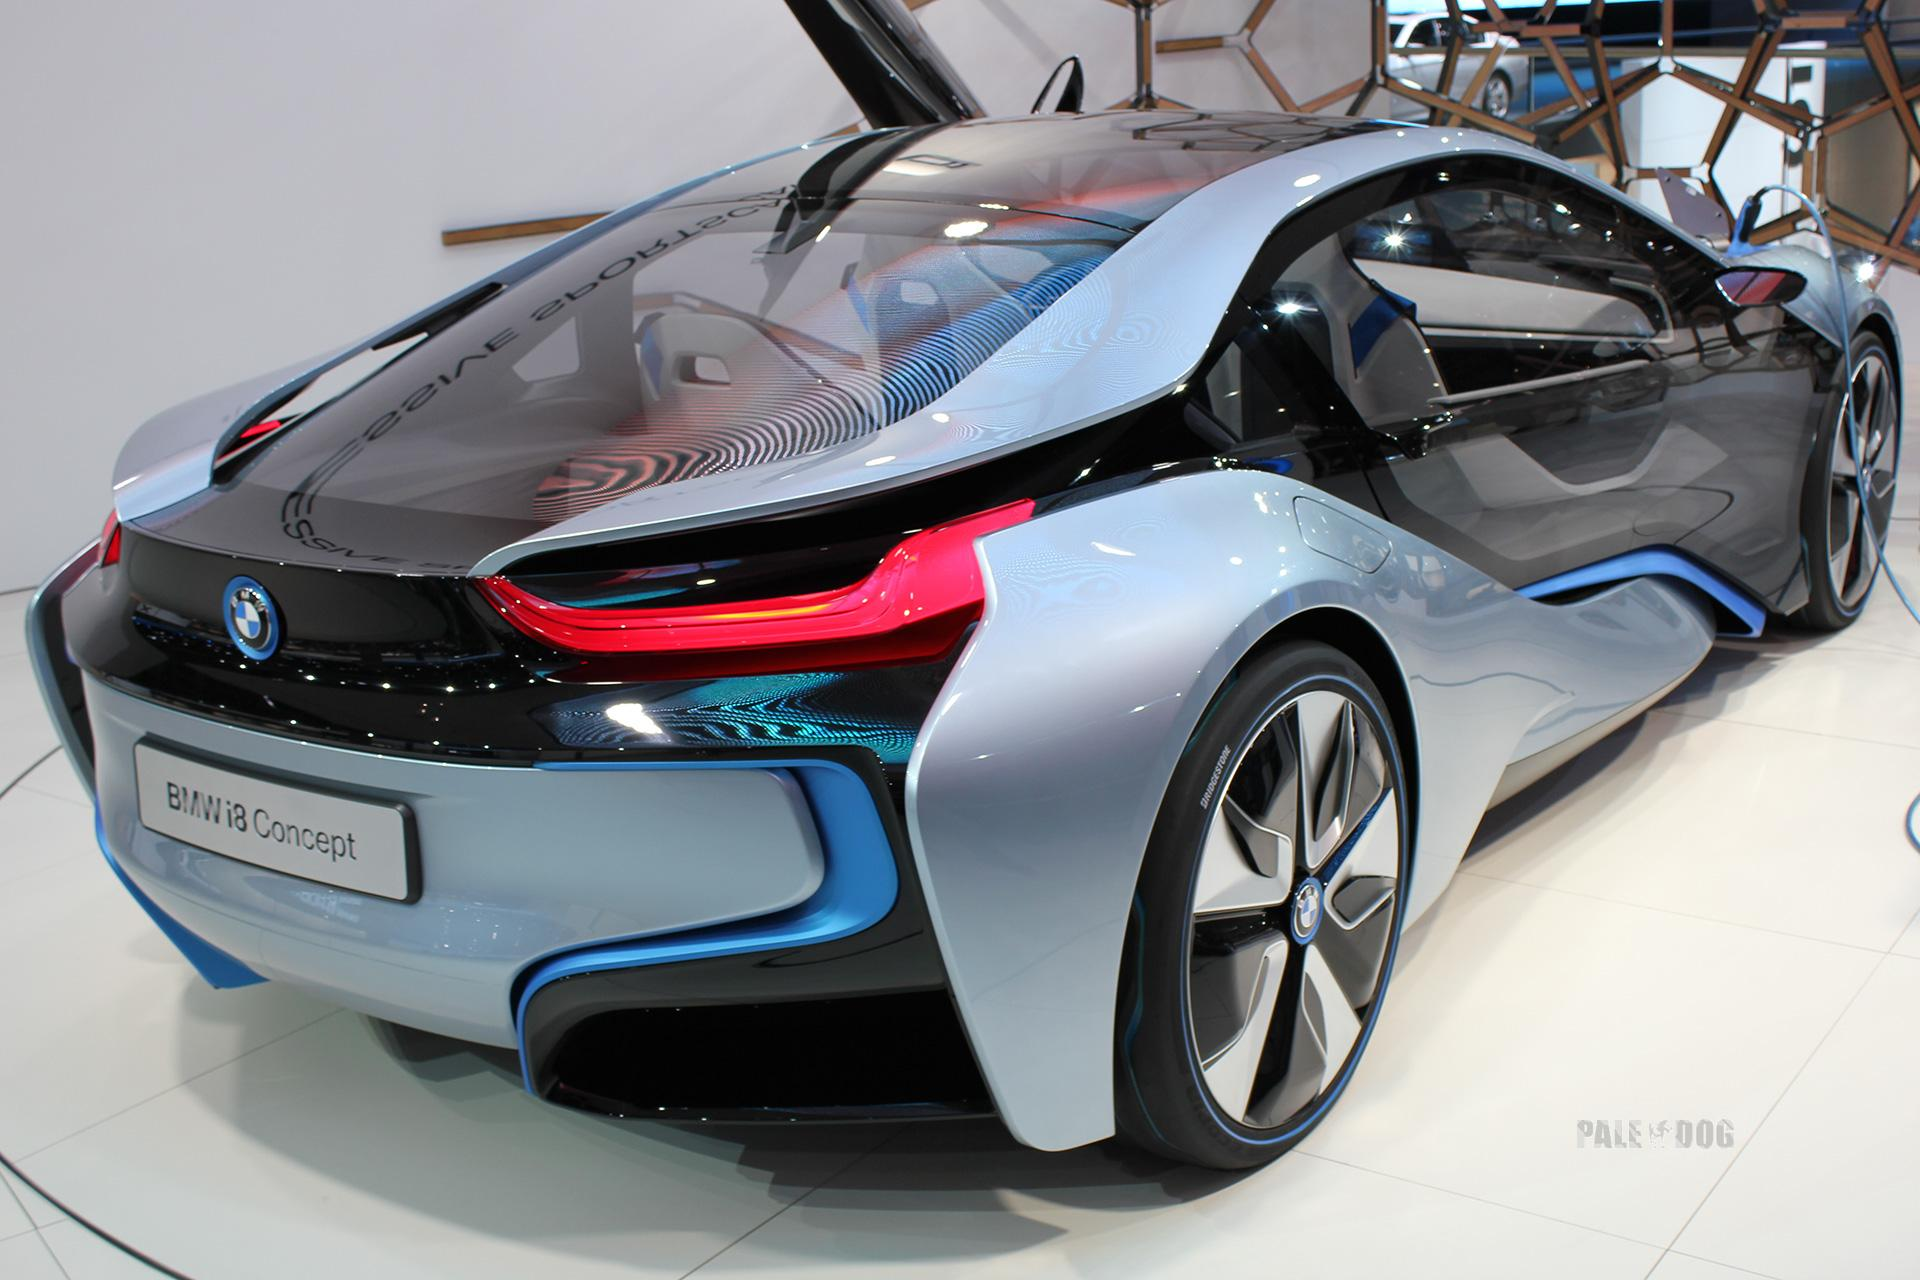 Images Of Bmw I8 Back View Calto